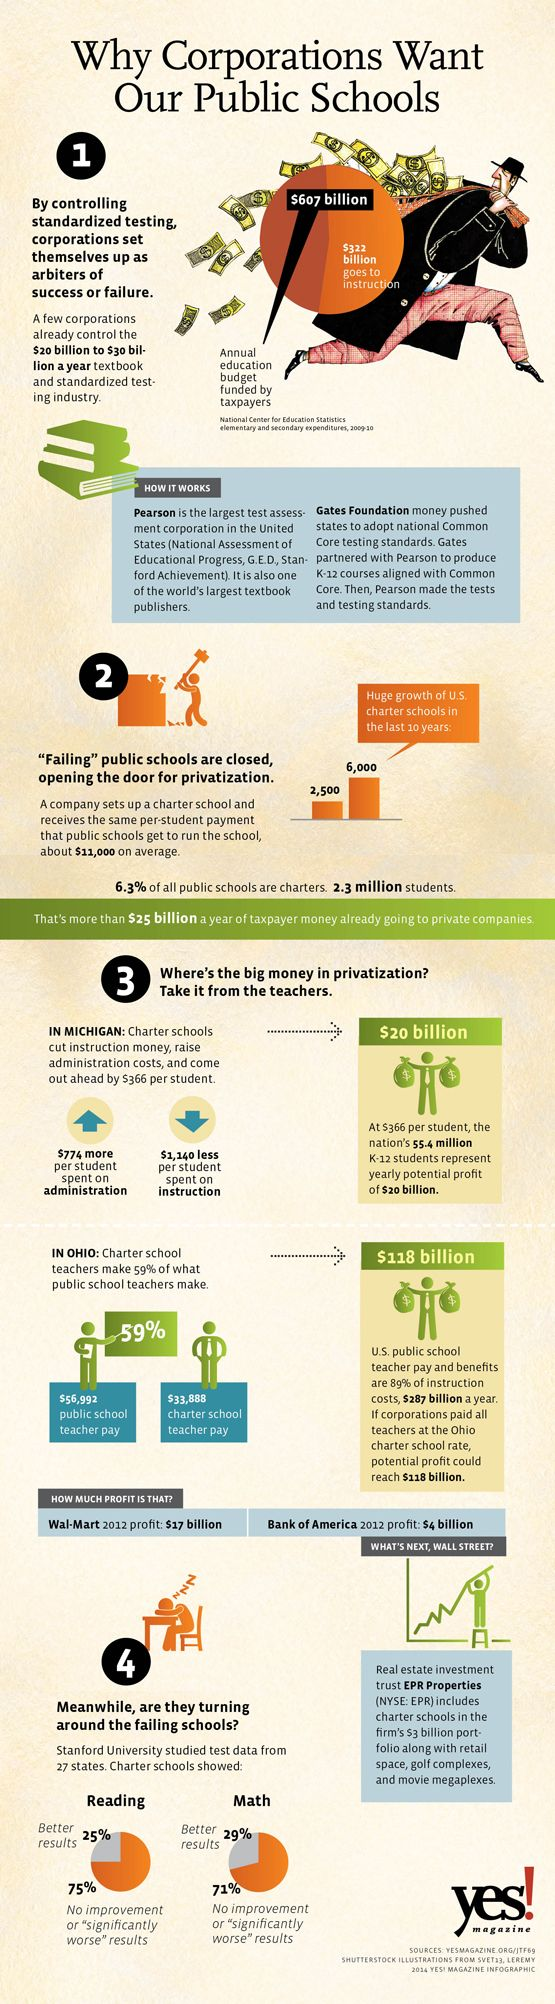 Infographic: Why Corporations Want Our Public Schools Where's the big money in privatization? Take it from the teachers.